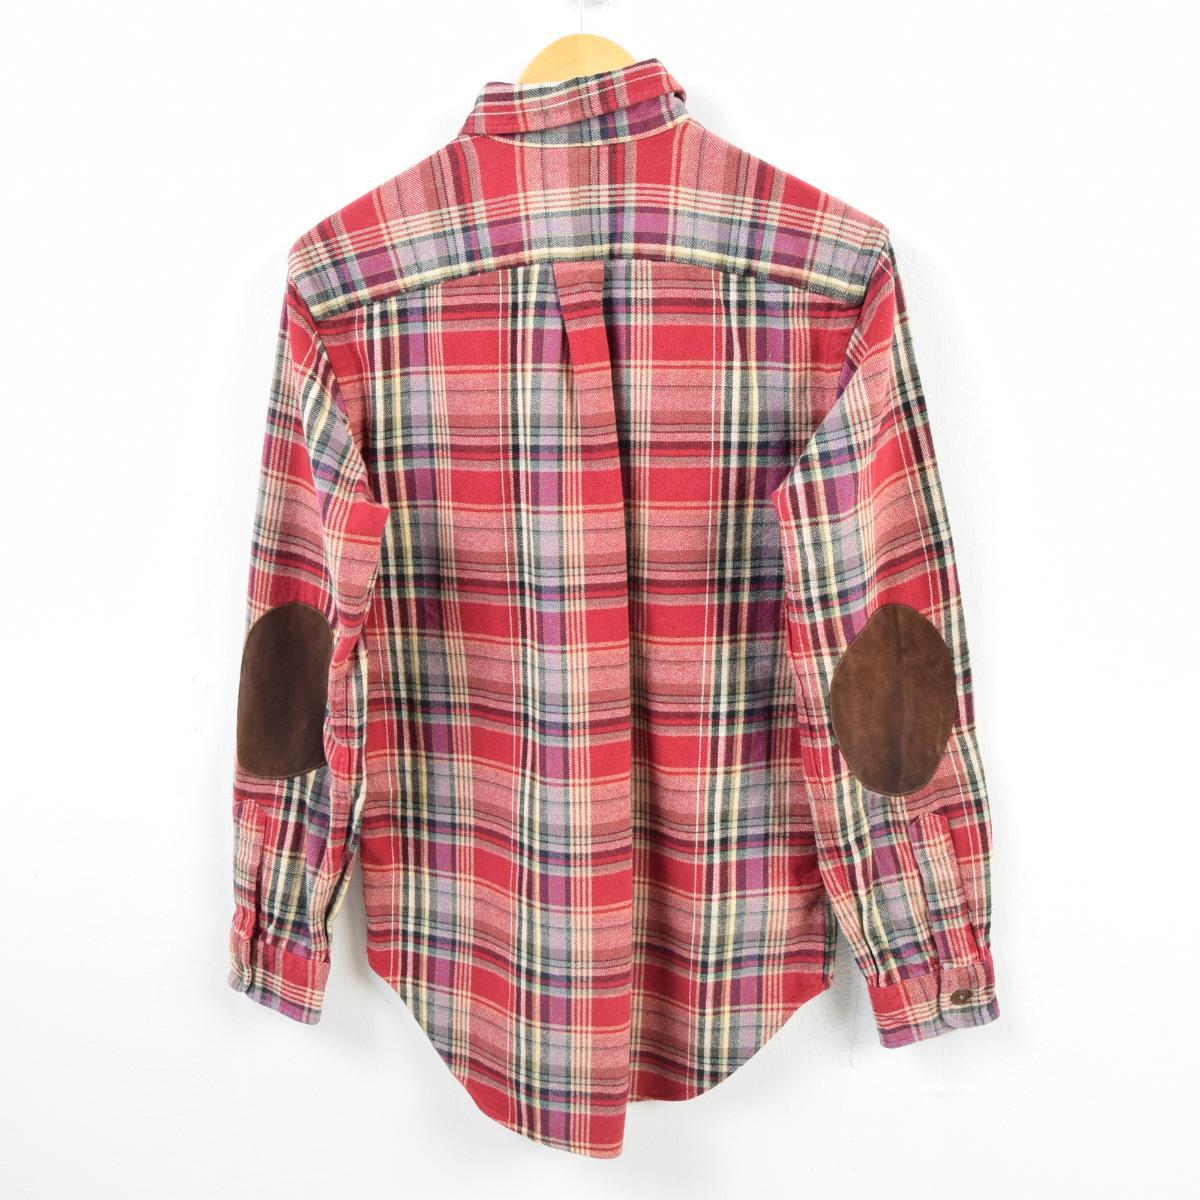 55dbfaa7 ... Checked pattern long sleeves heavy flannel shirt men S /wbb2031 with  the Ralph Lauren Ralph ...